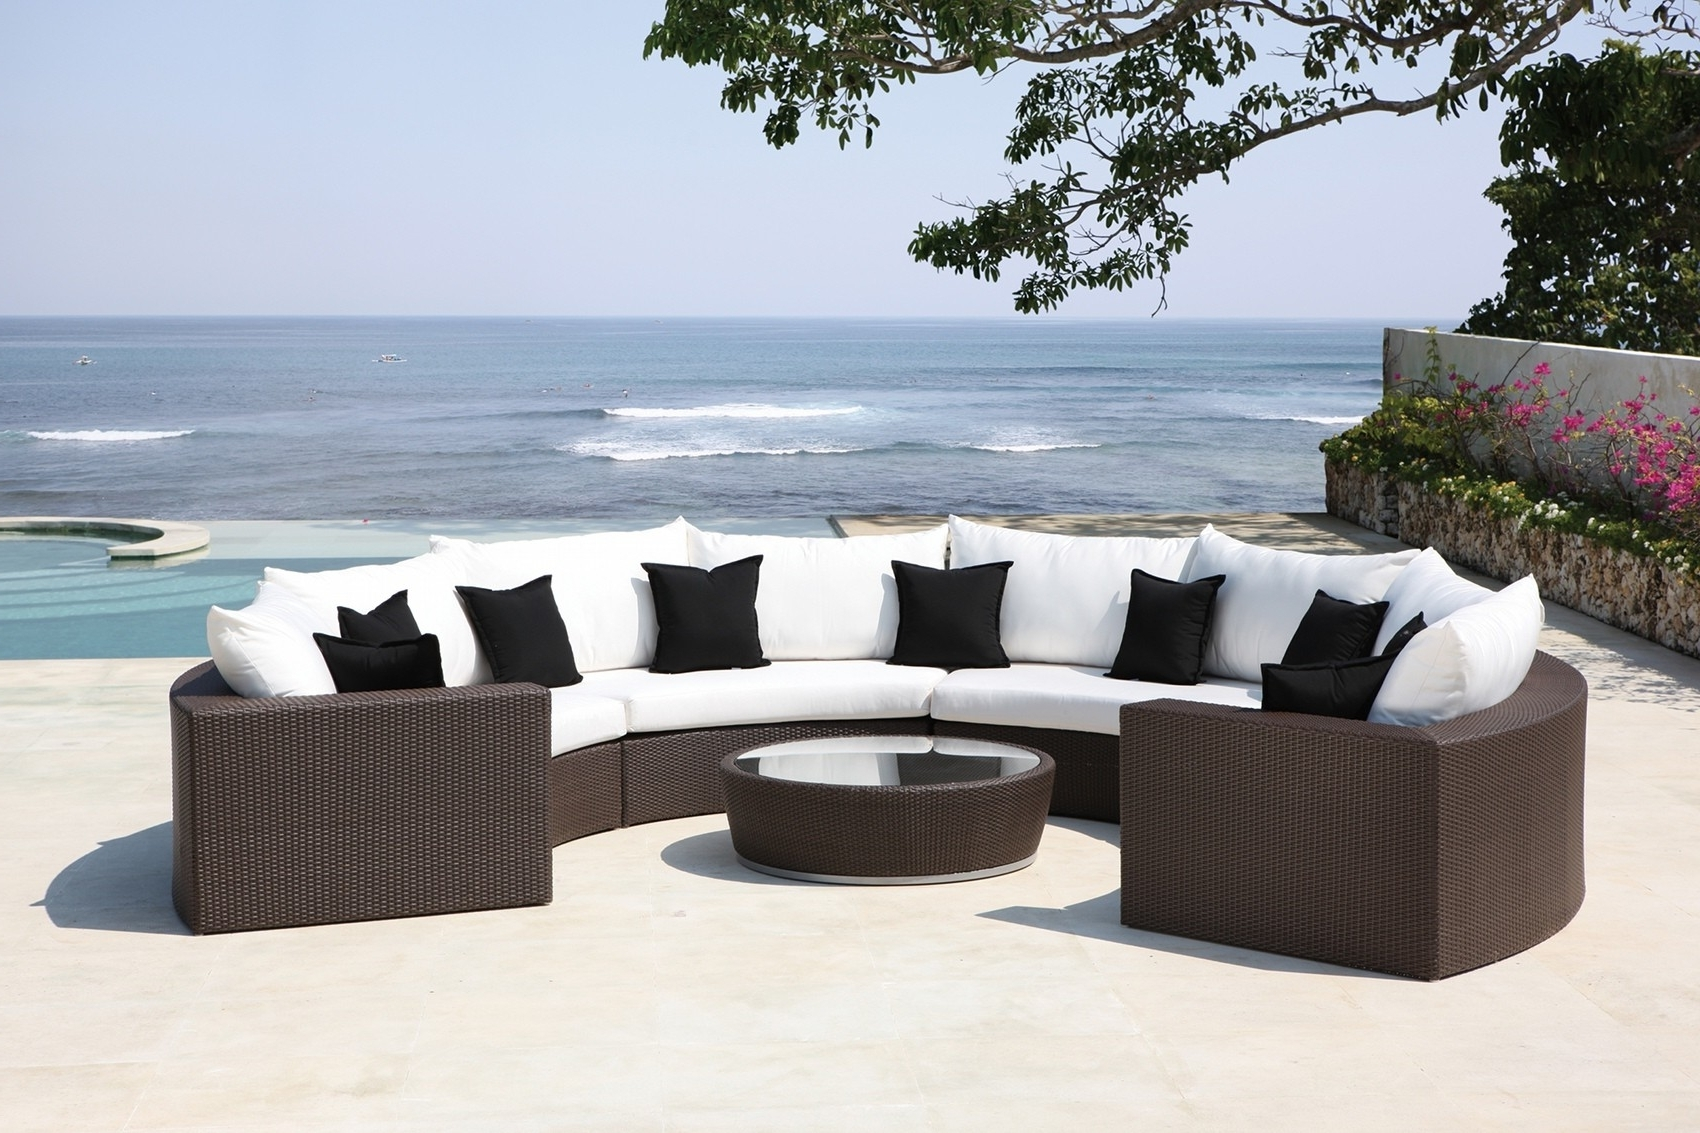 Widely Used Upscale Patio Umbrellas Regarding Patio: Amusing Luxury Patio Furniture Upscale Outdoor Furniture (View 5 of 20)